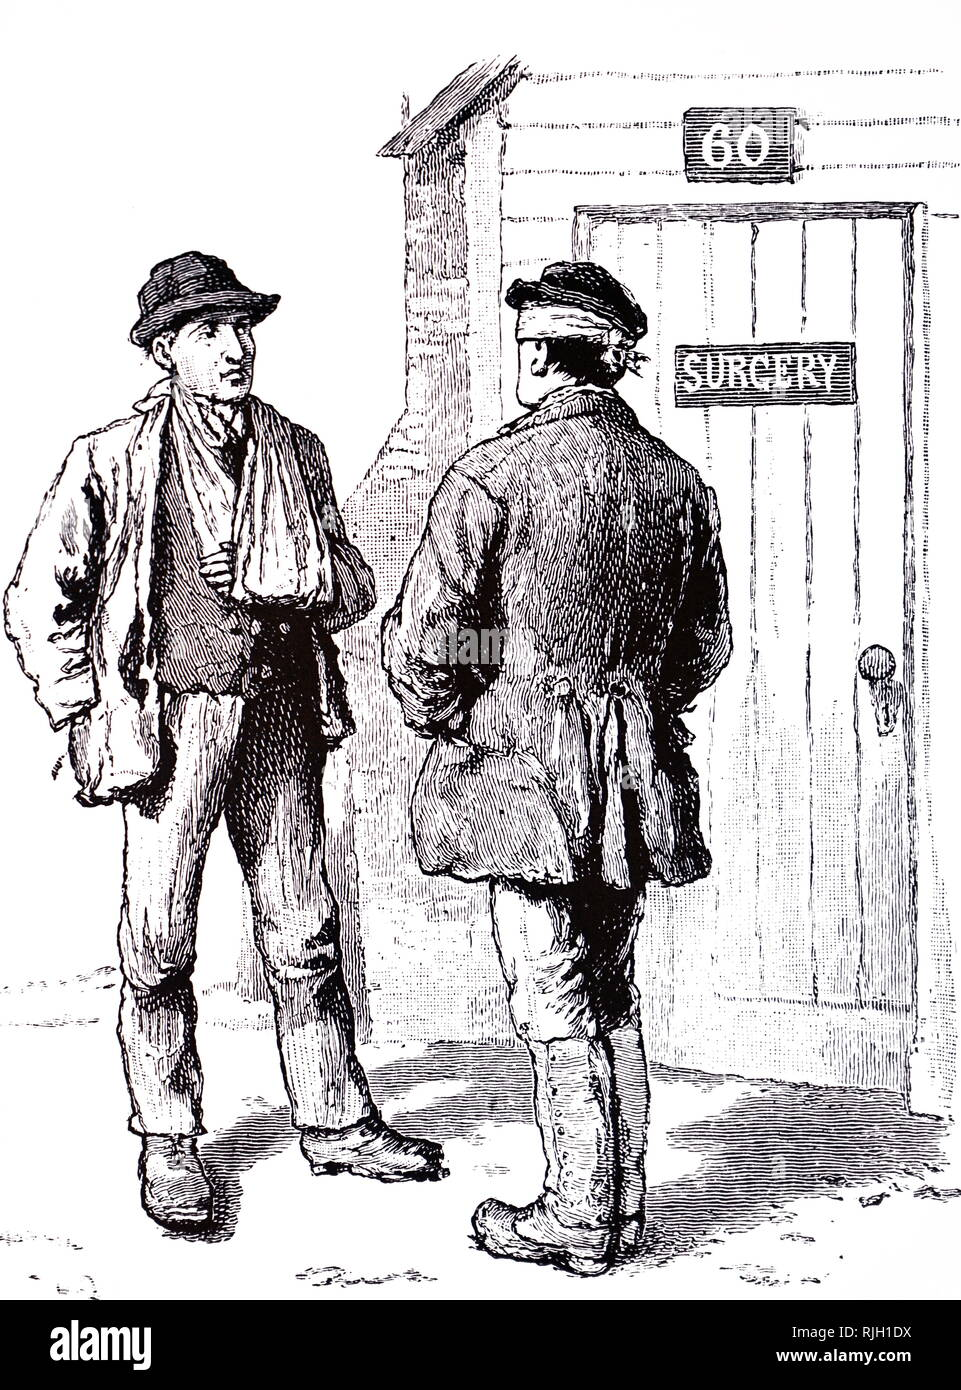 An engraving depicting the victims of minor injuries outside the site surgery during the construction of the docks at Tilbury Fort. Dated 19th century - Stock Image